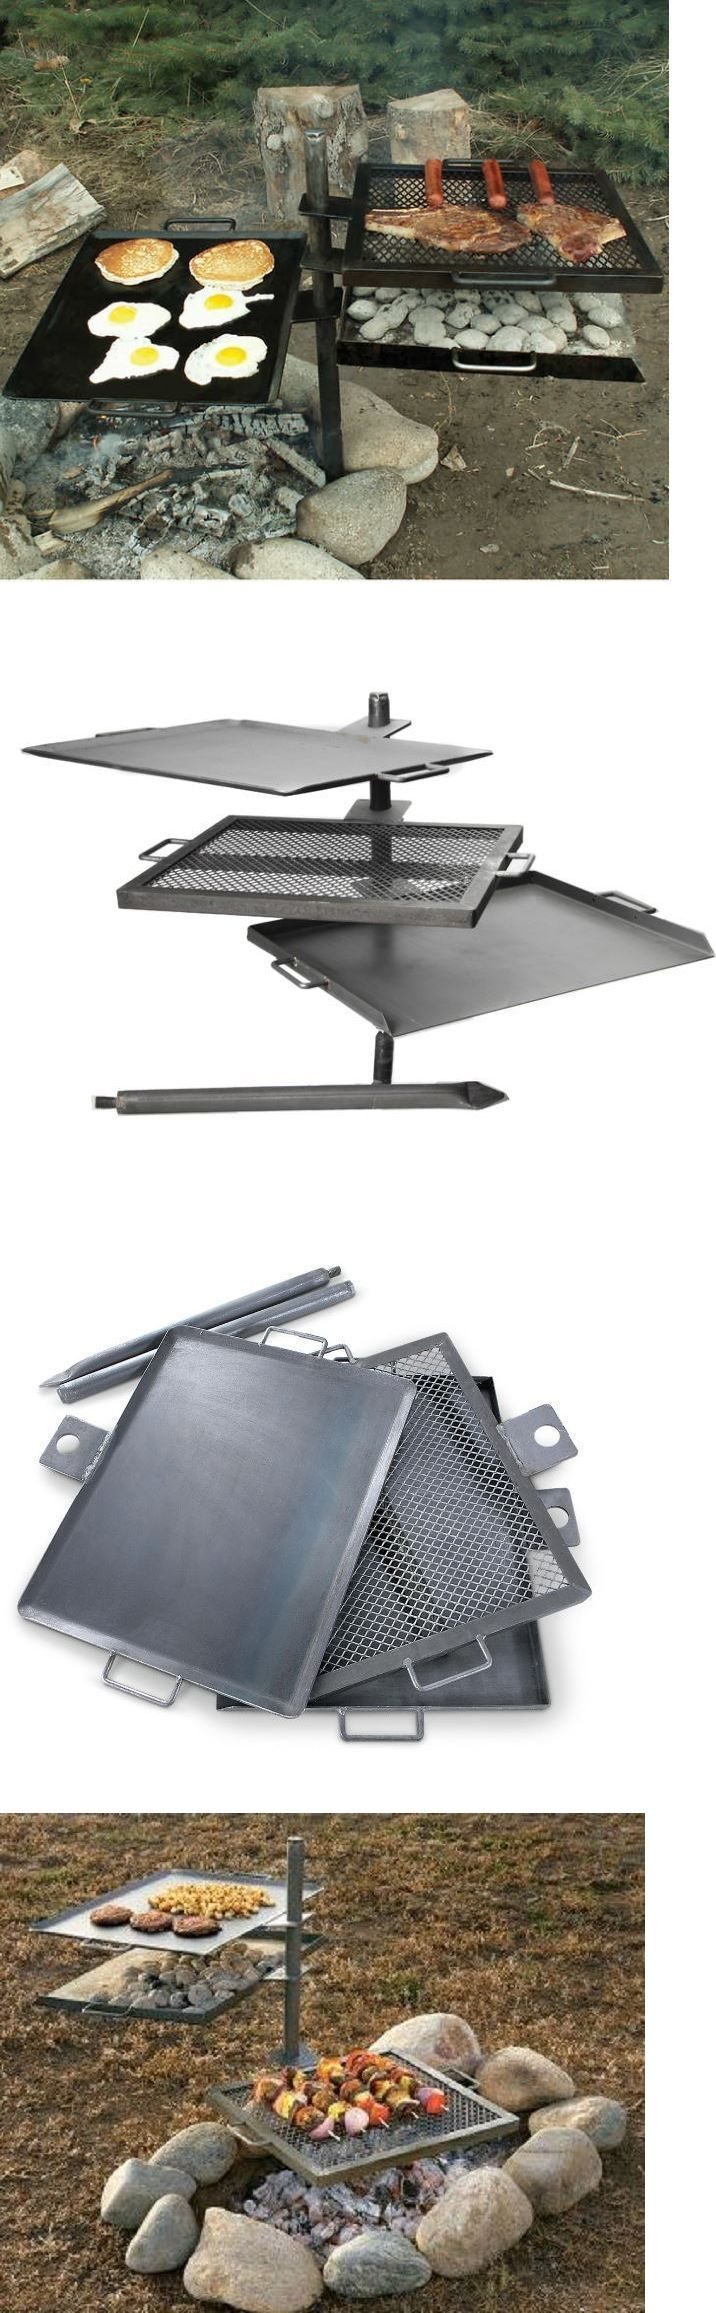 Camping Cookware 87141: Campfire Grill Camping Gear Cooking Camp Kitchen Pit Portable Outdoor Griddle -> BUY IT NOW ONLY: $149.95 on eBay!